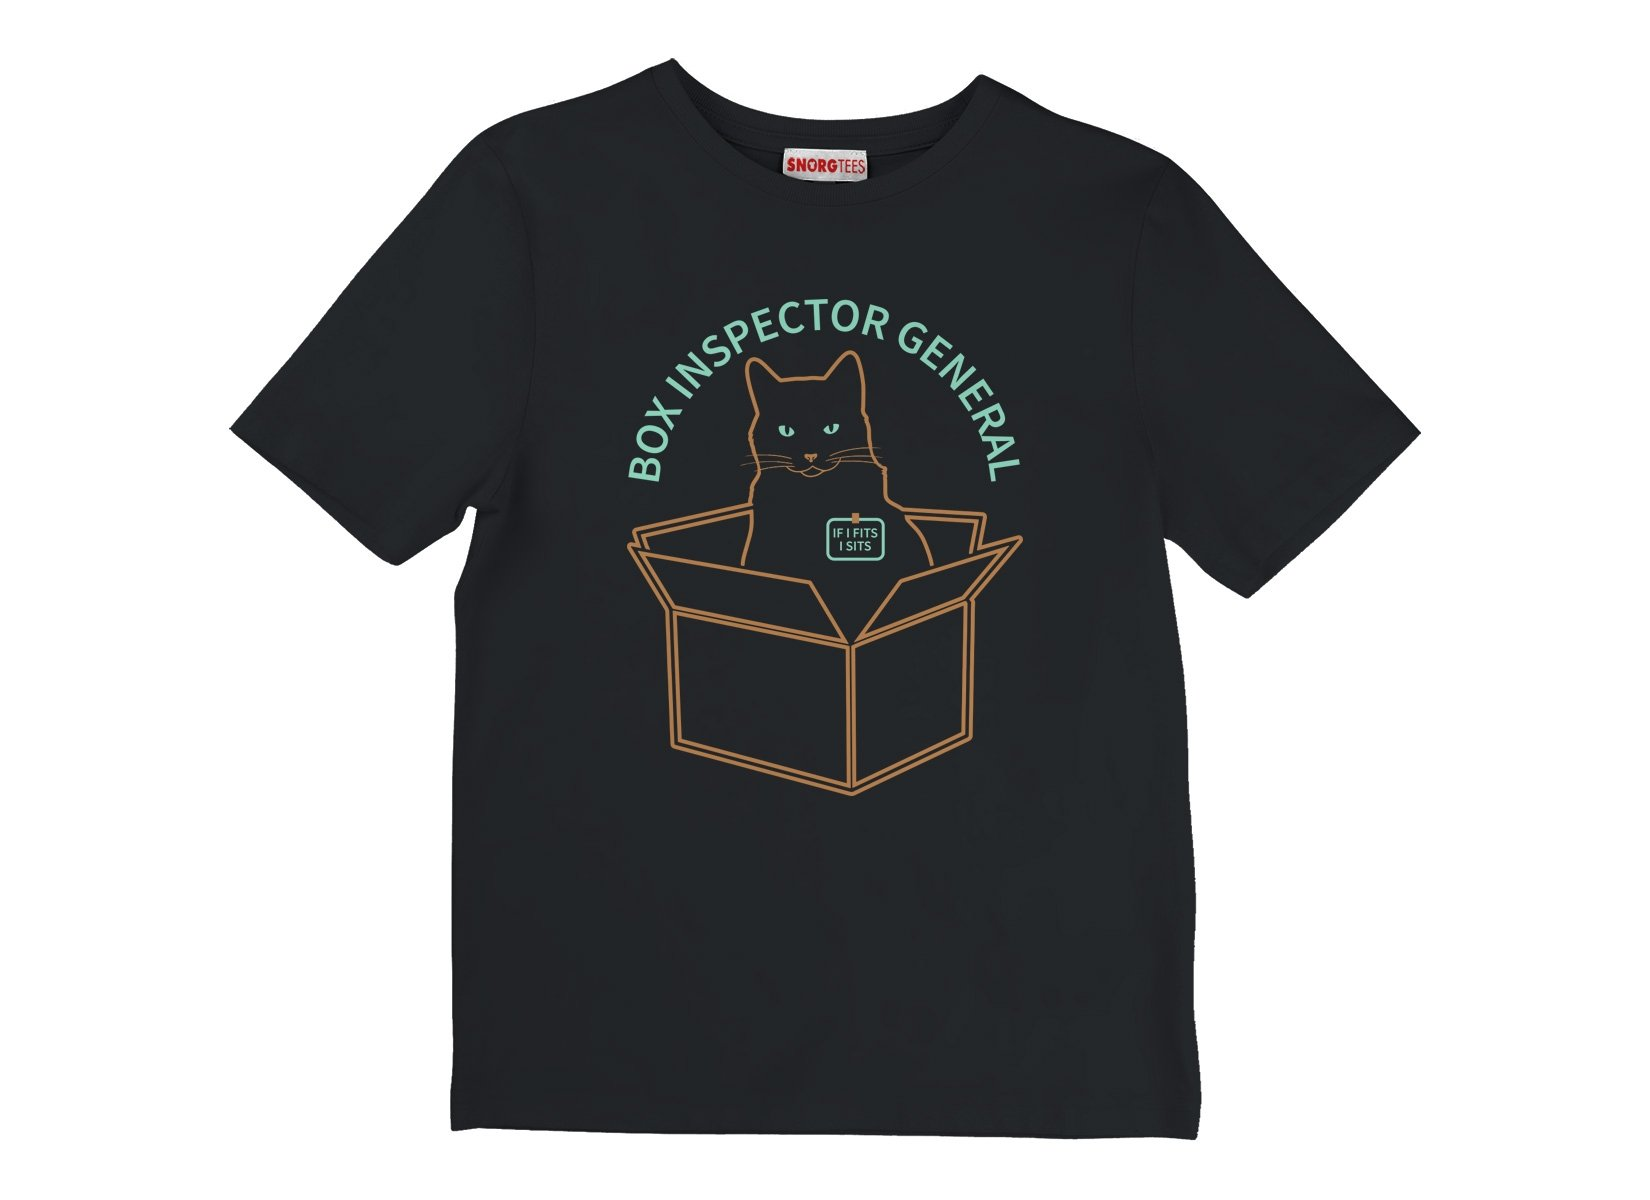 Box Inspector General on Kids T-Shirt